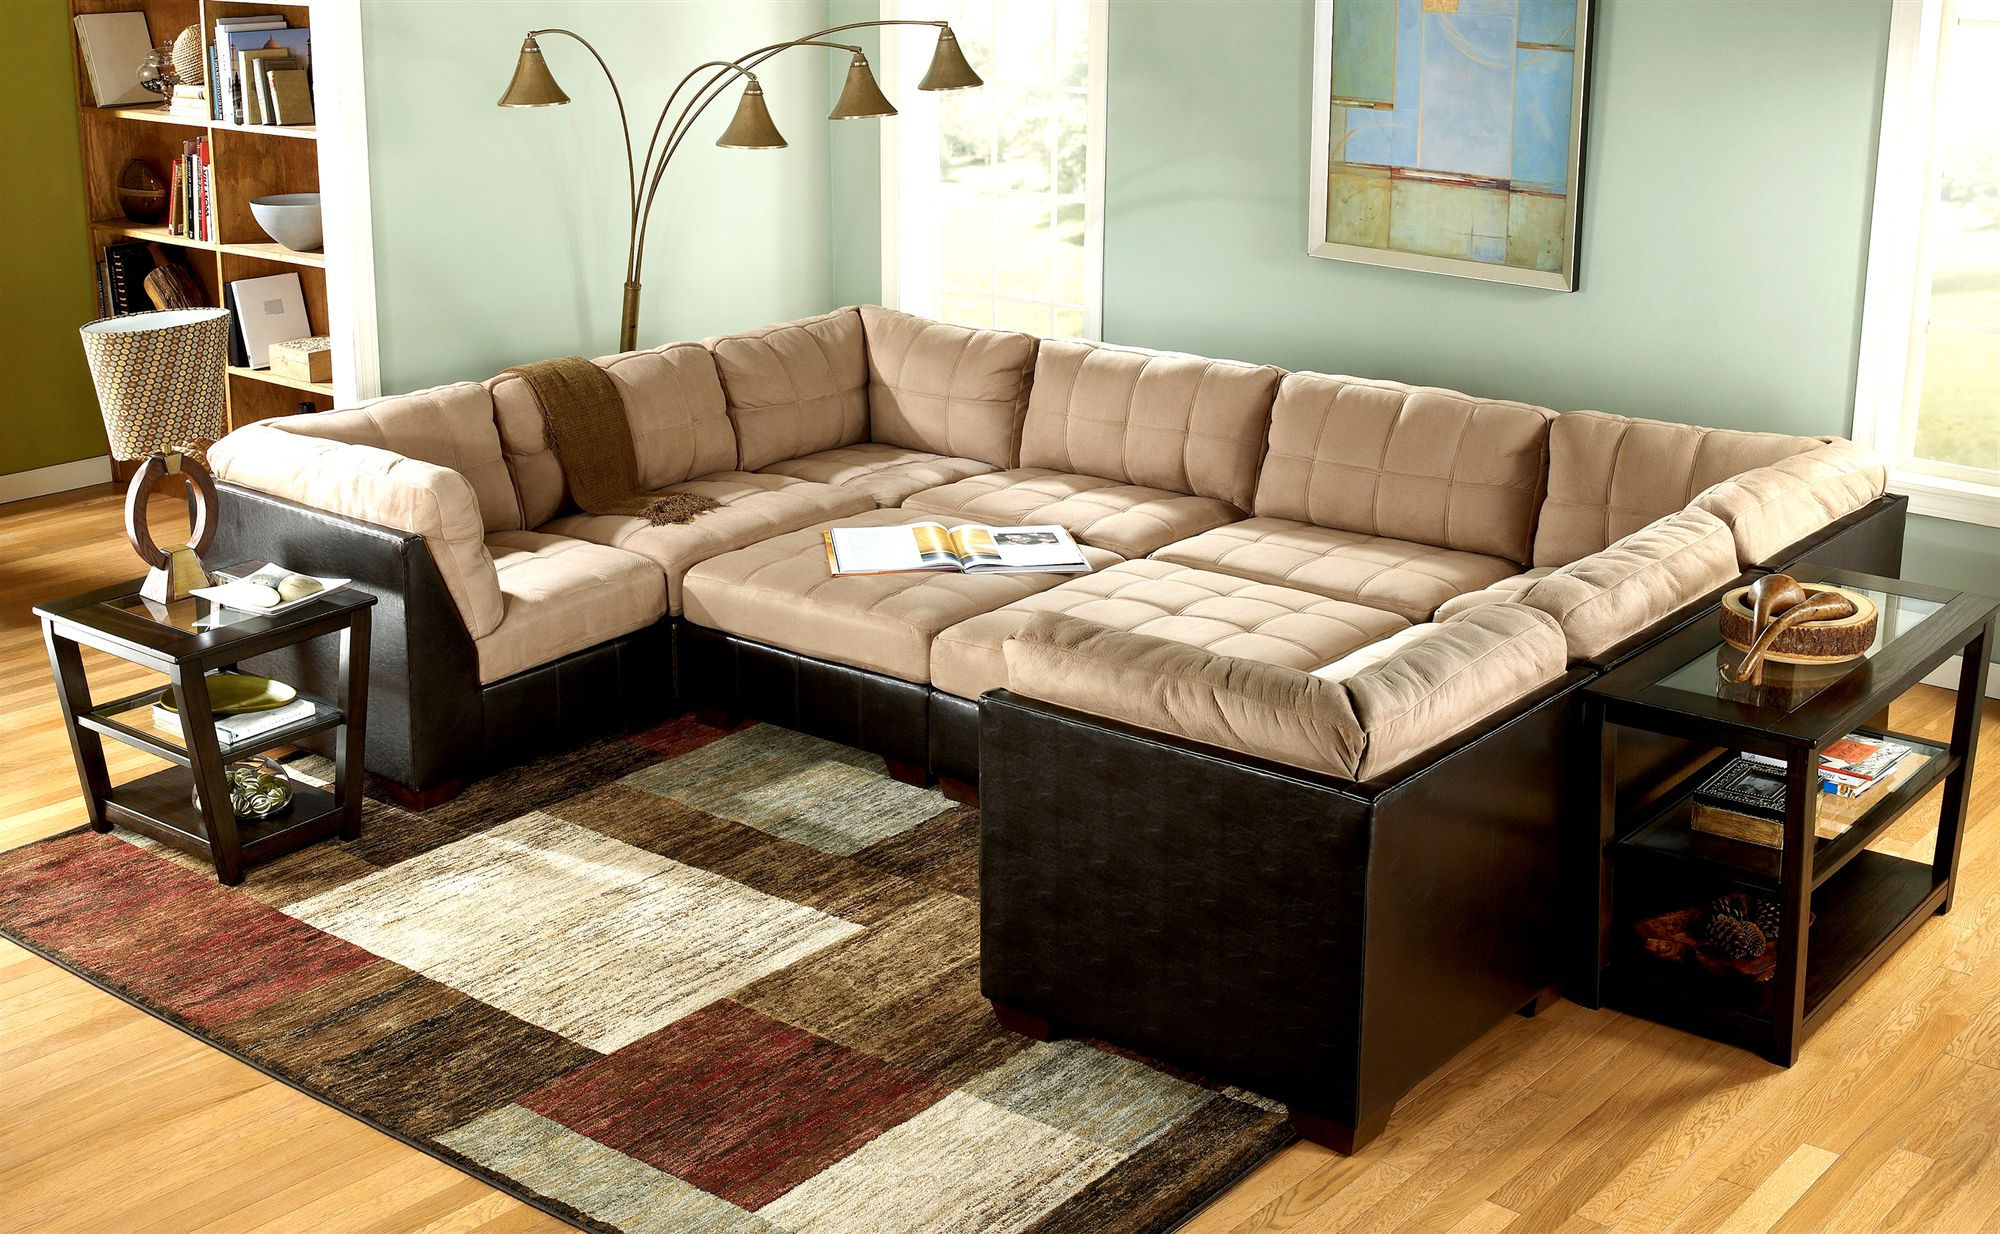 Living Room Ideas With Sectionals Sofa For Small Living Room Roy Home Design